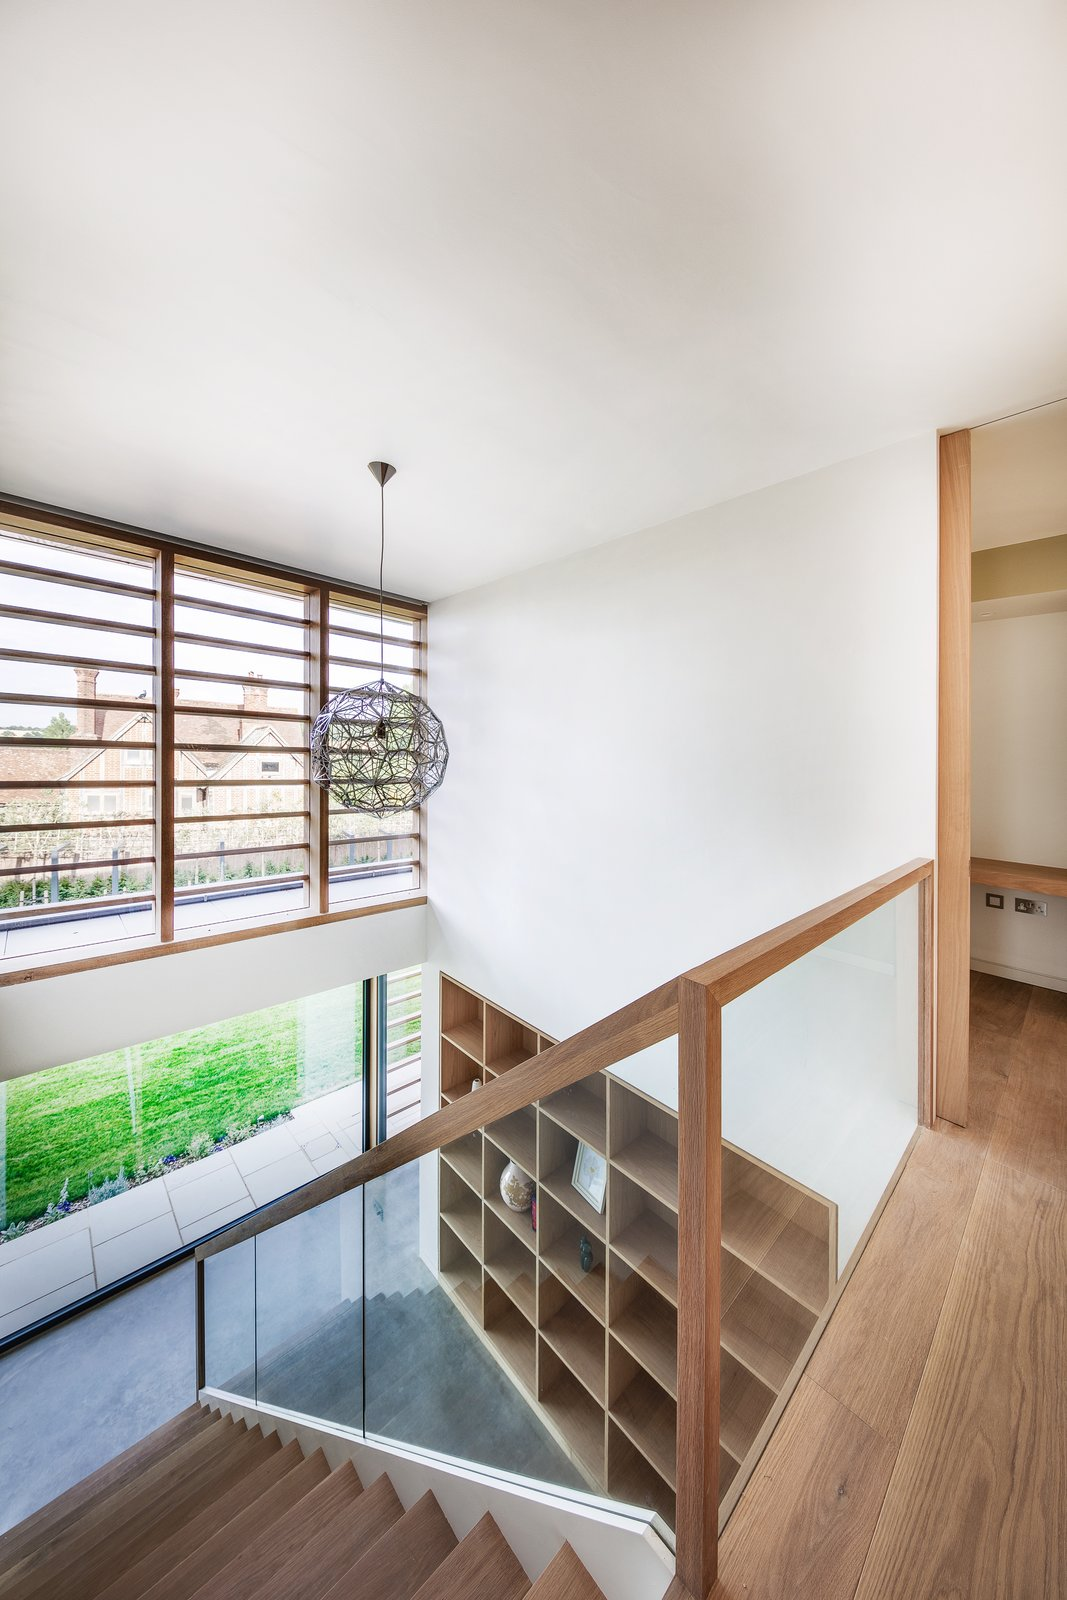 Staircase, Wood Tread, Wood Railing, and Glass Railing A glimpse at the Timber shutters from The New England Shutter Company.    Photo 11 of 17 in A 17th-Century Conservation Area in England Greets a Modern Home